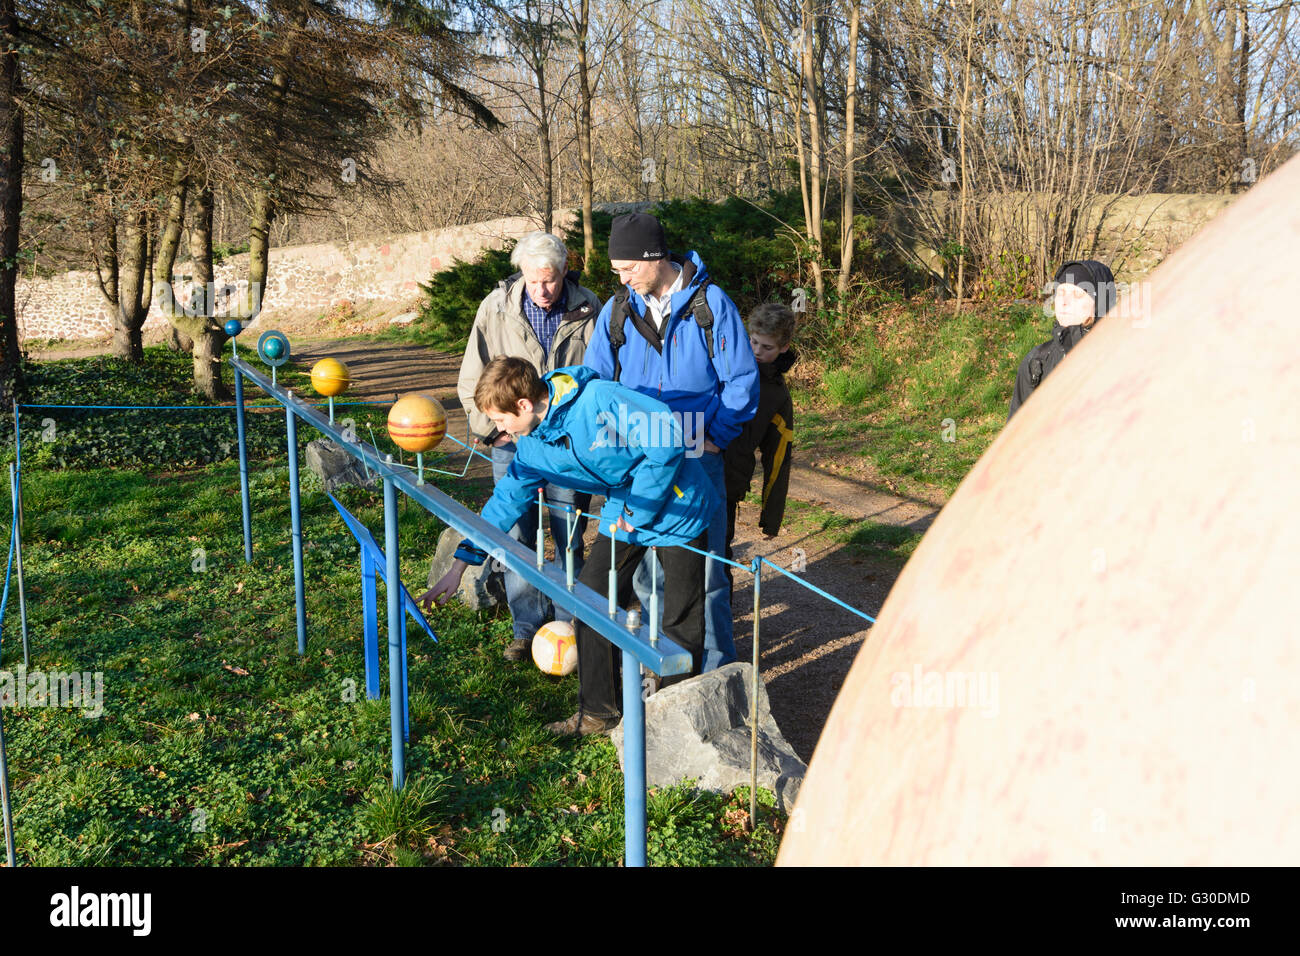 lineup of planets (front the sun ) at the observatory with visitors, Germany, Sachsen, Saxony , Radebeul - Stock Image